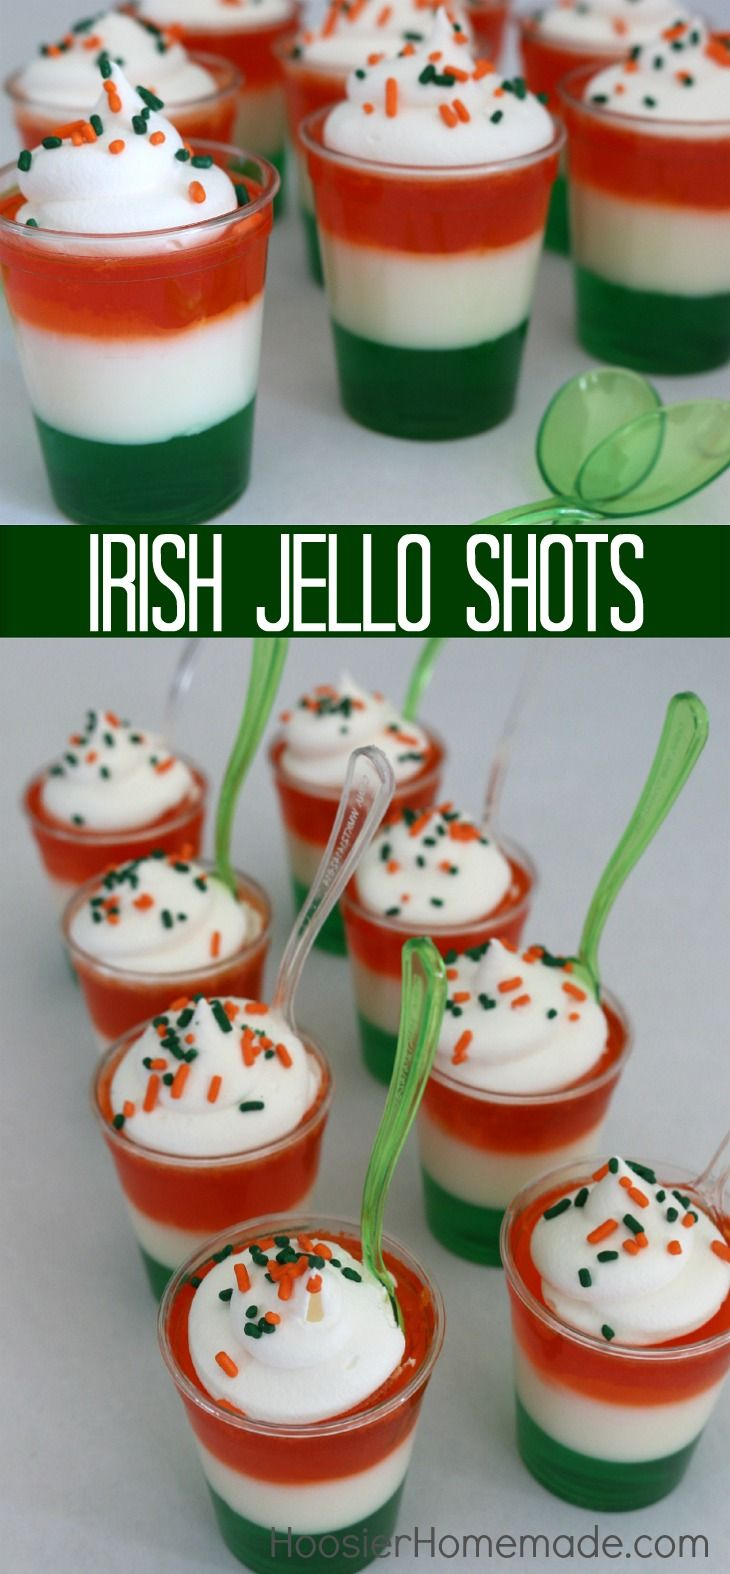 Irish Jello Shots – this fun St. Patrick's Day Treat can be made with or without alcohol. A little goes a long way in making these